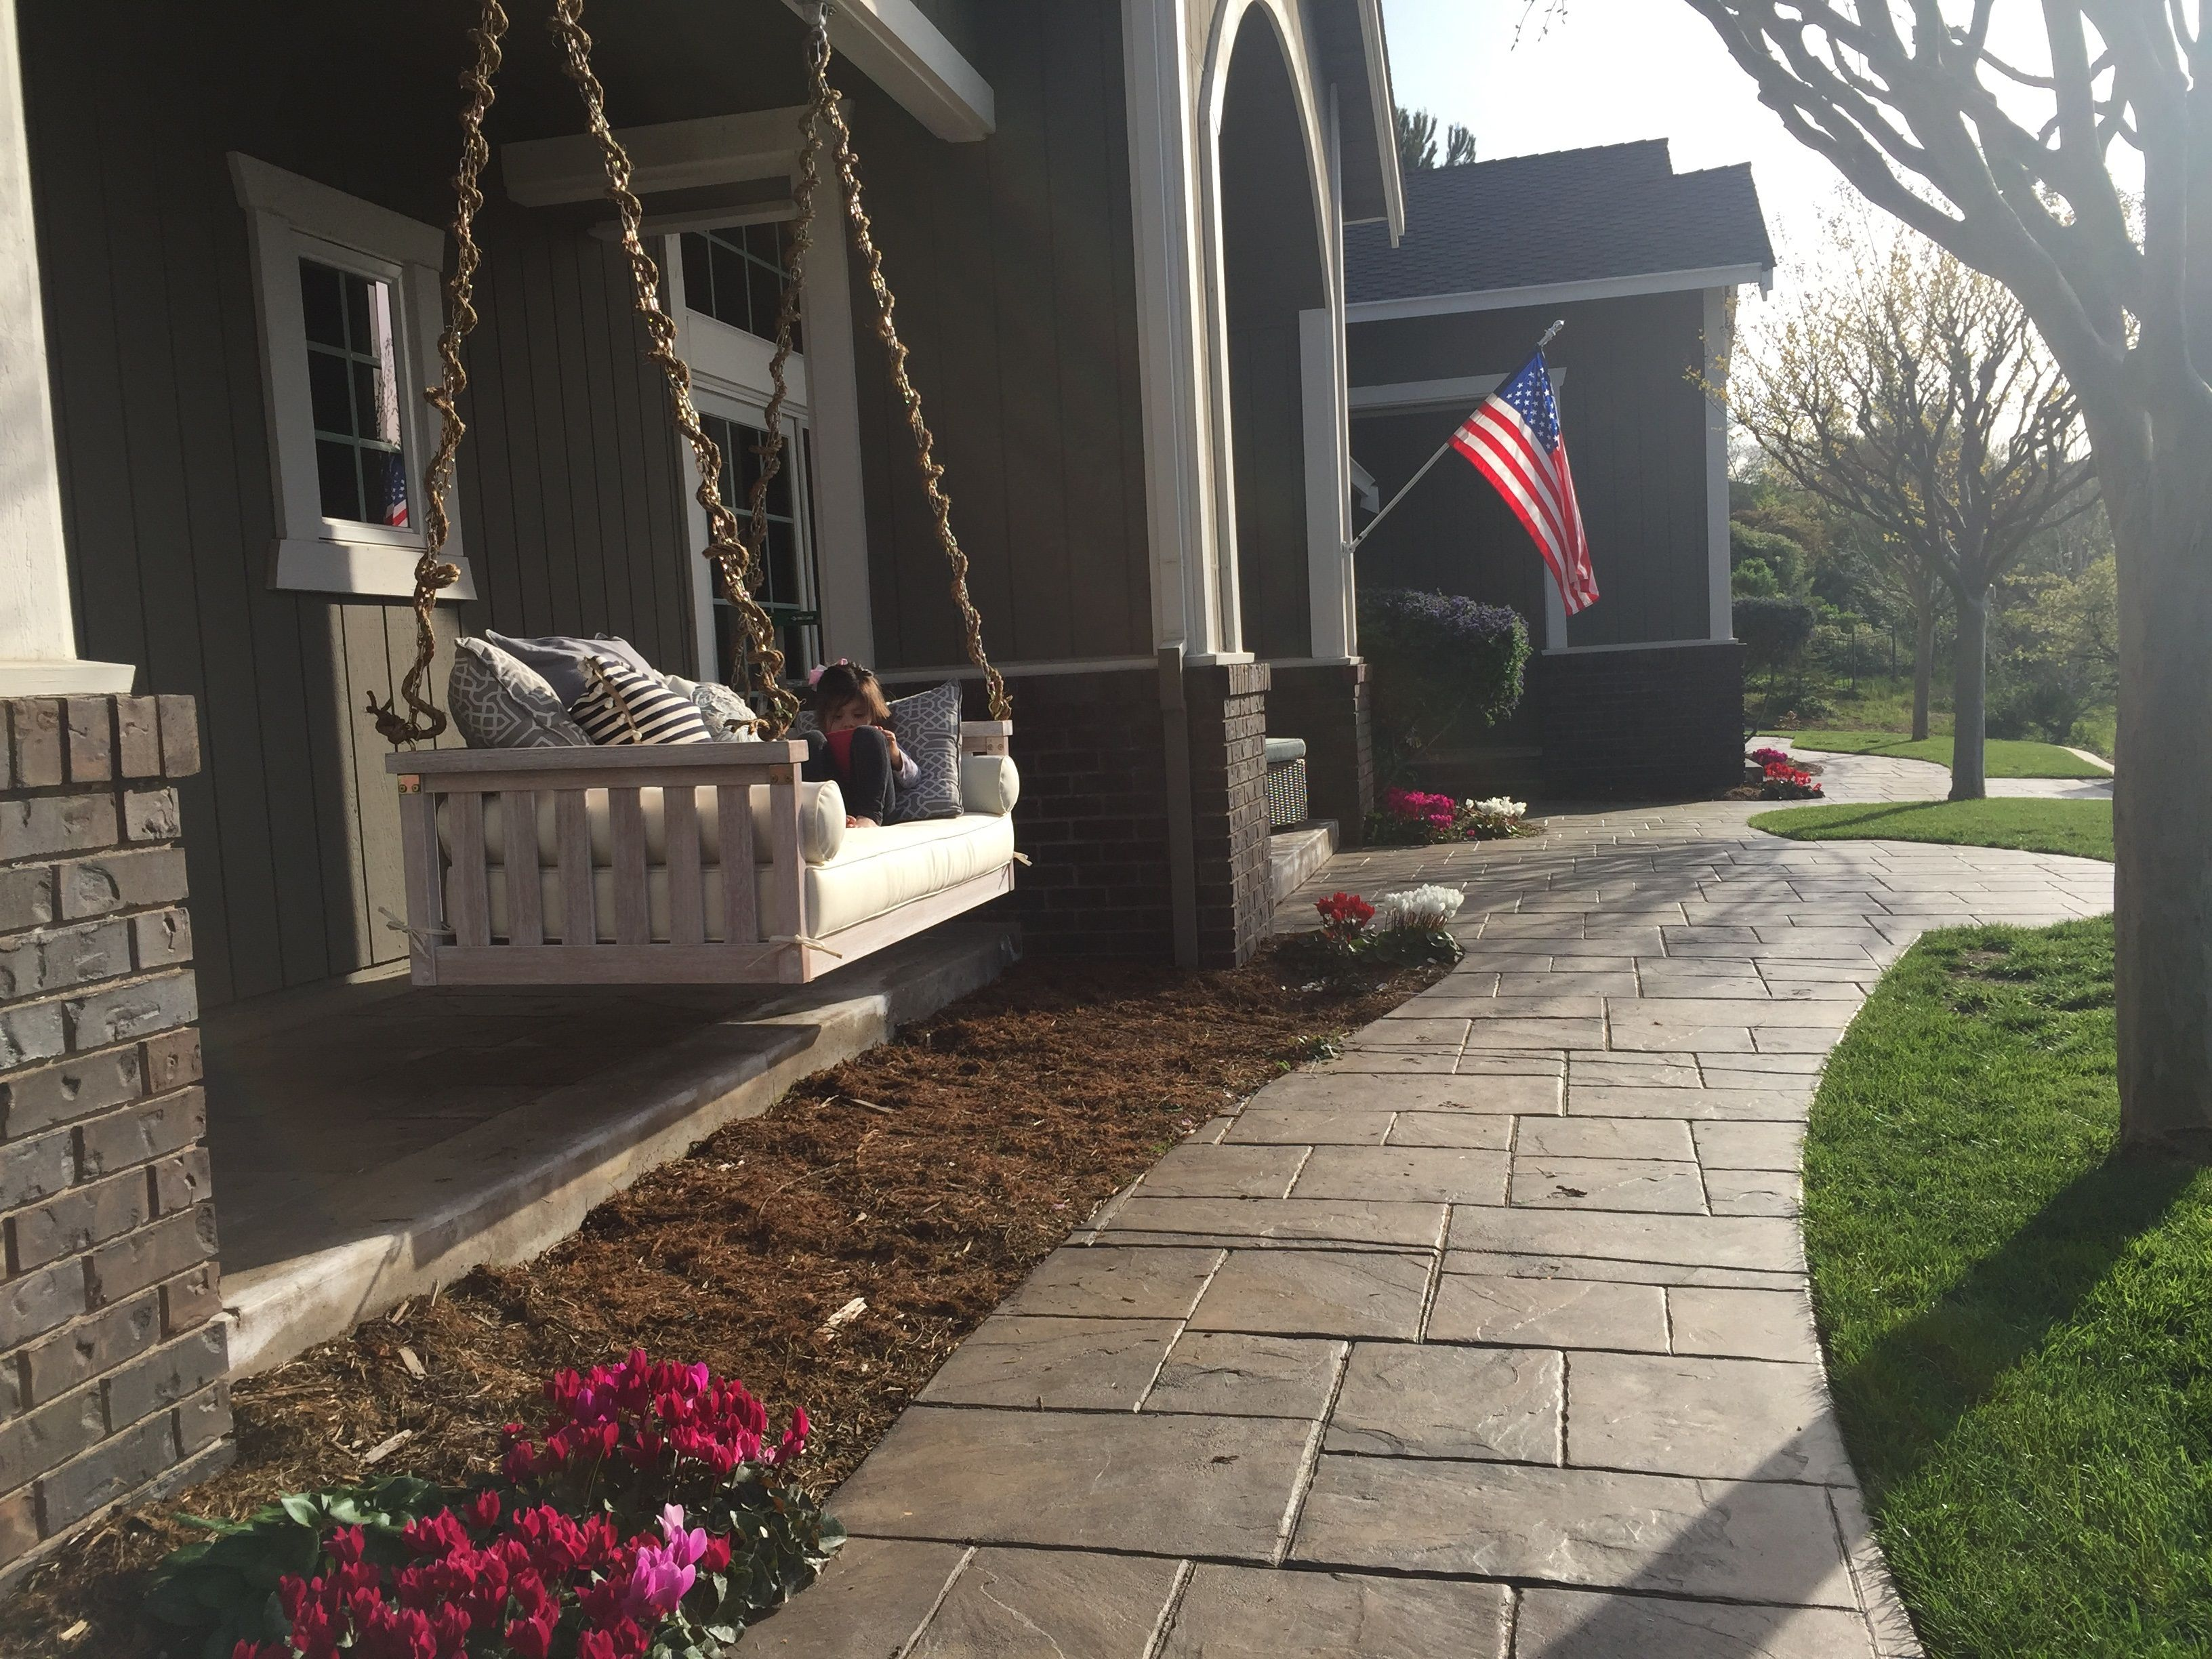 porch swing ballard designs chain manila rope outdoor decor front yard porch swing american flag stamped concrete ballard designs spring